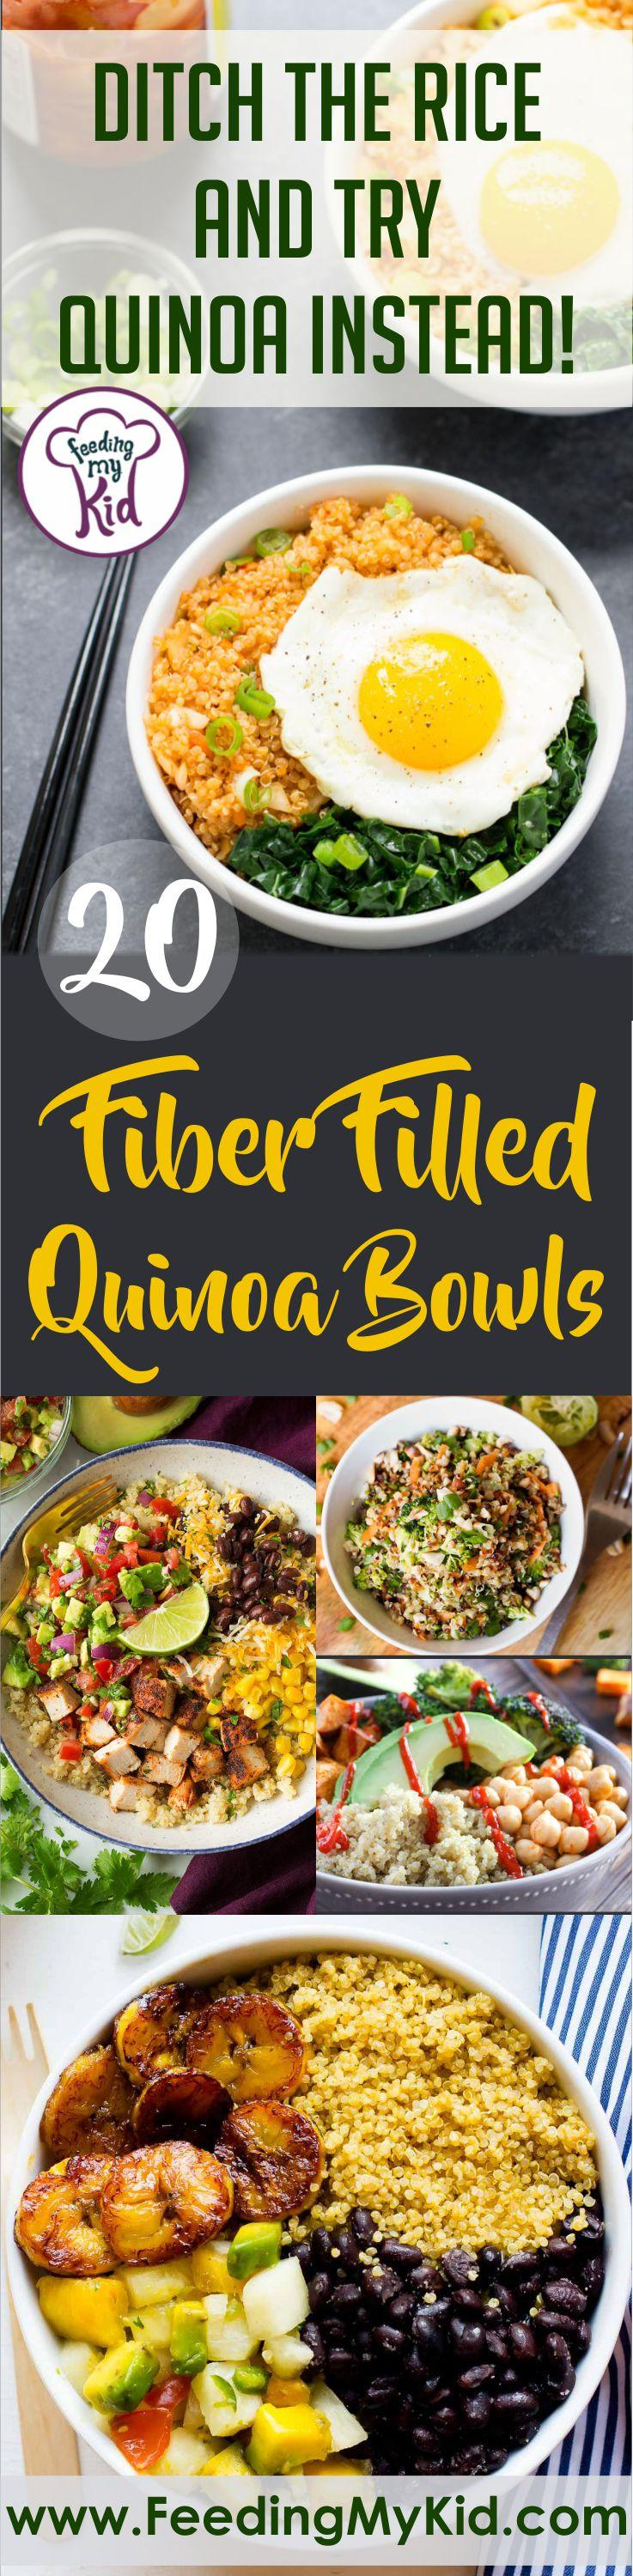 Ditch the rice and try quinoa instead! These quinoa bowl recipes are filled with fiber and healthy carbs. Plus, they taste amazing.